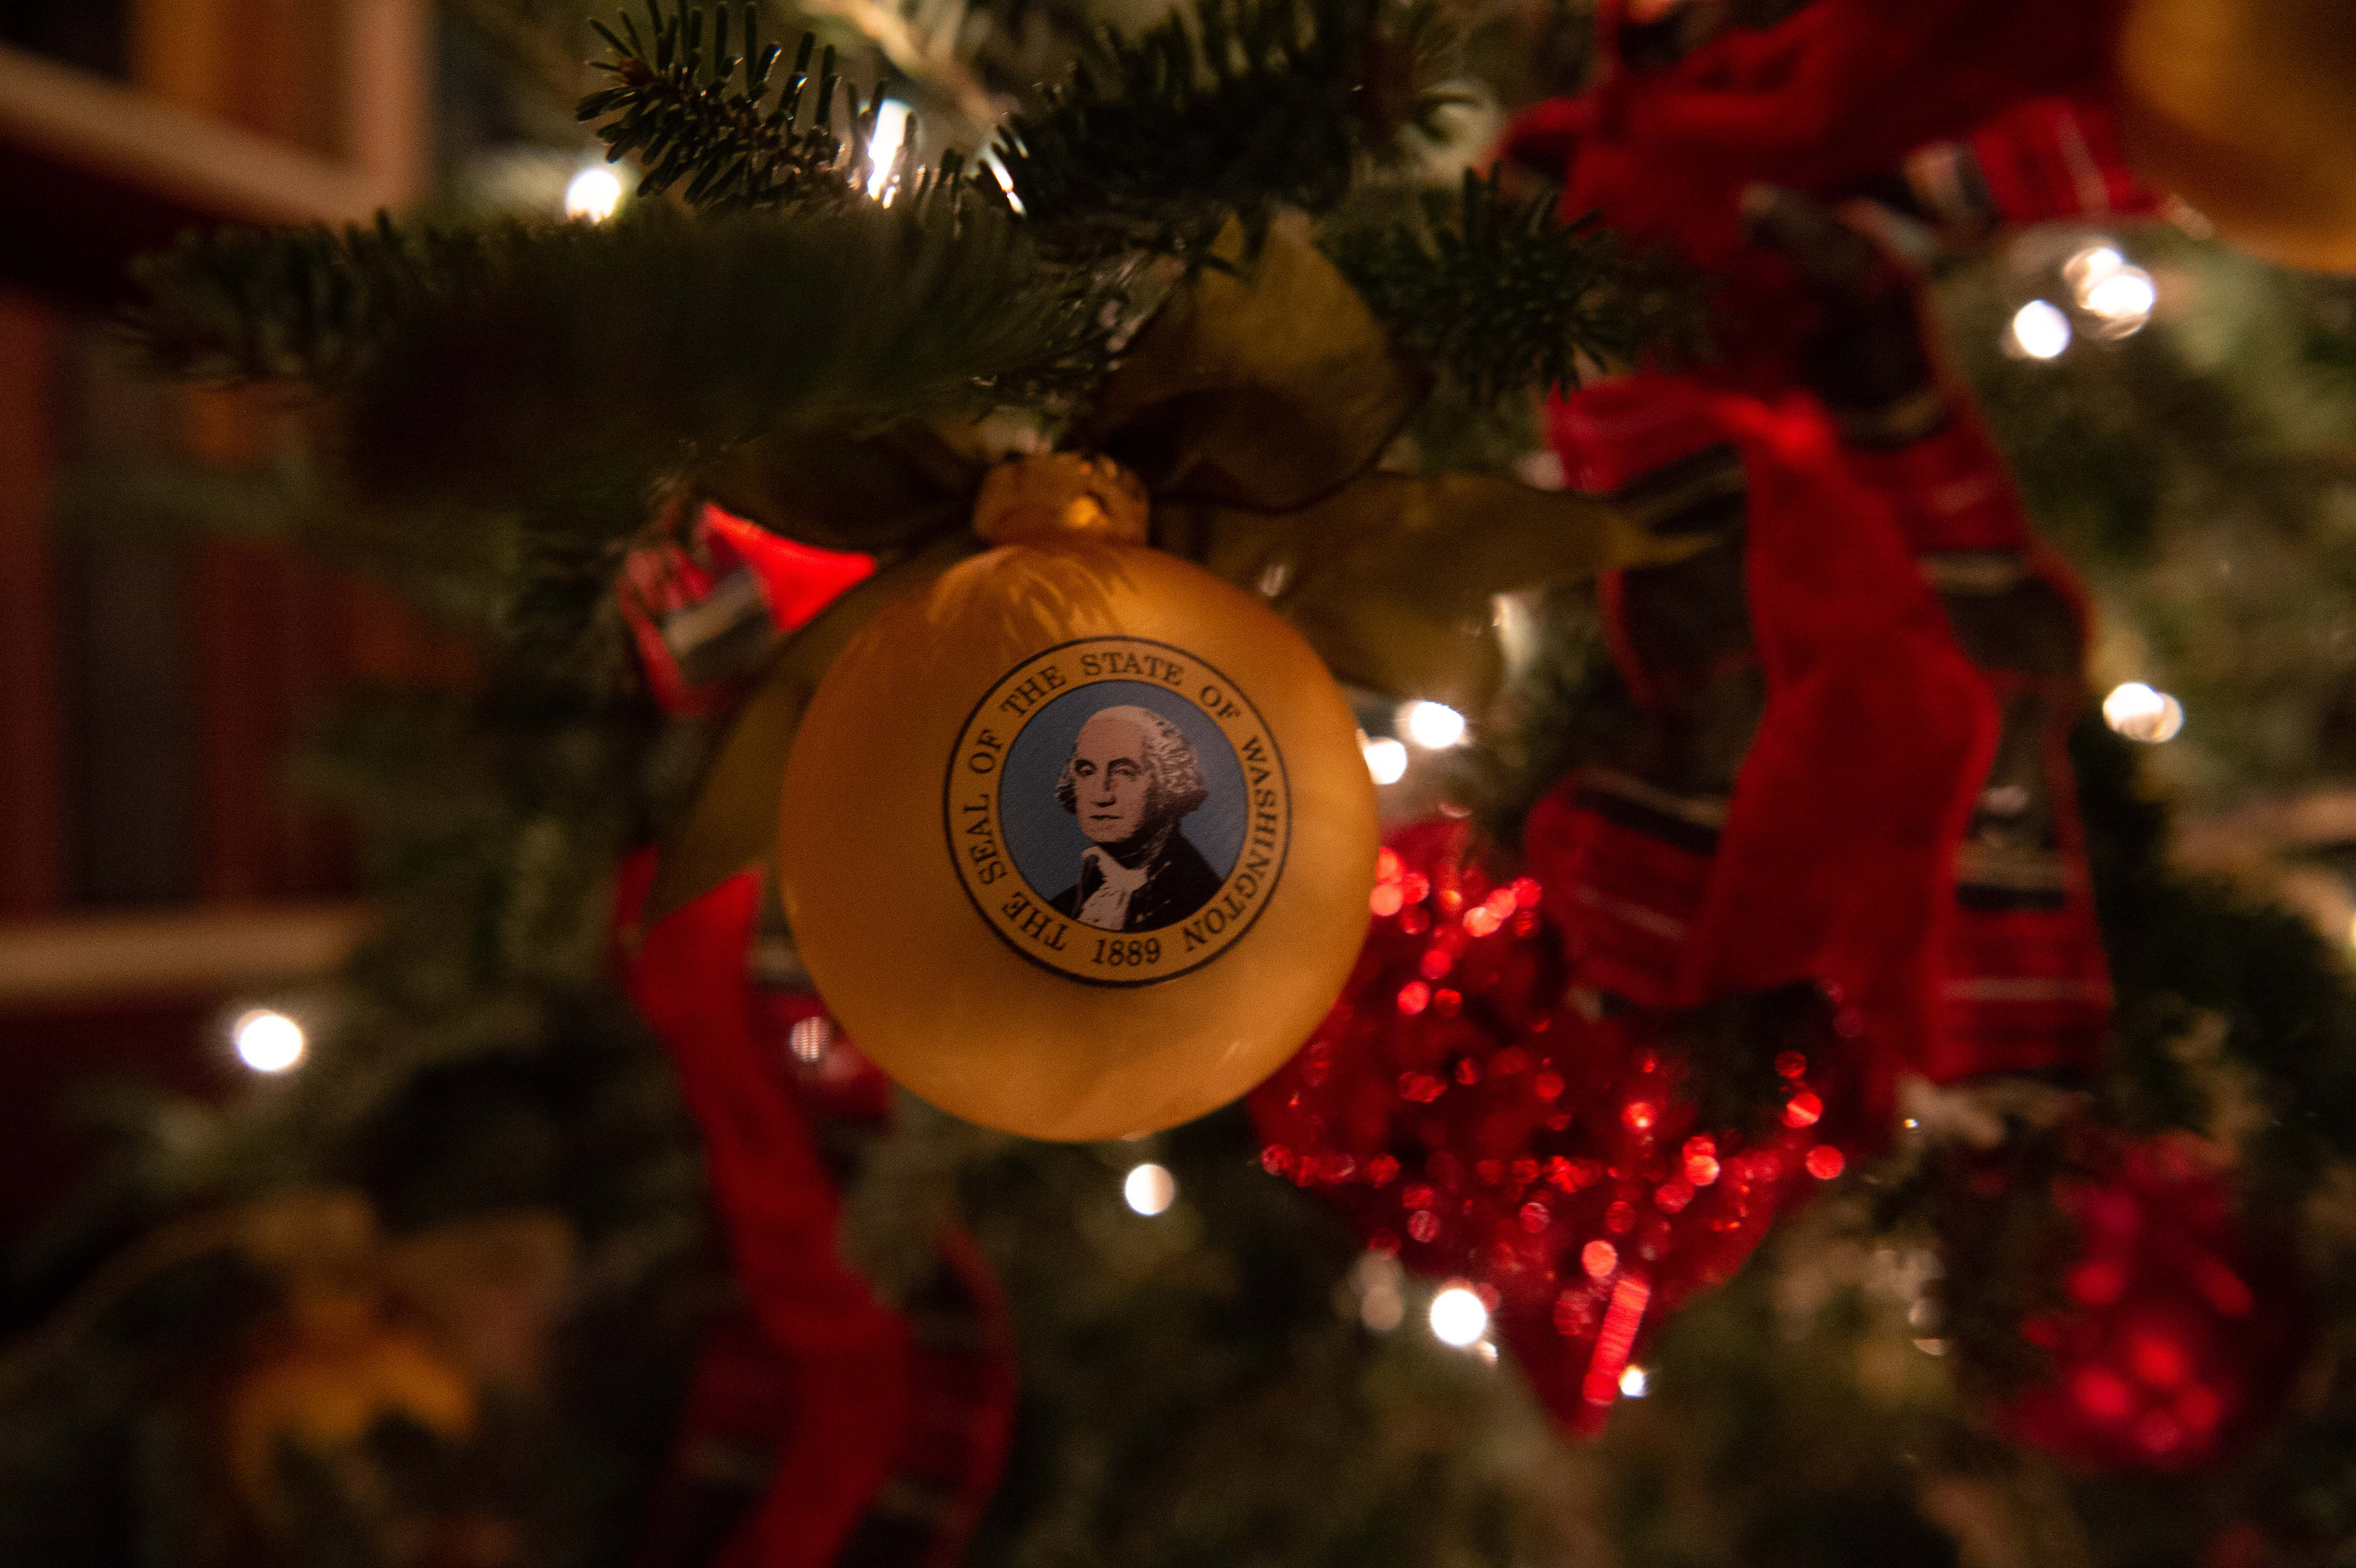 A Christmas ornament hangs from a tree at the White House during a preview of the 2018 holiday decor in Washington, DC, on November 26, 2018. (Photo by NICHOLAS KAMM/AFP/Getty Images)